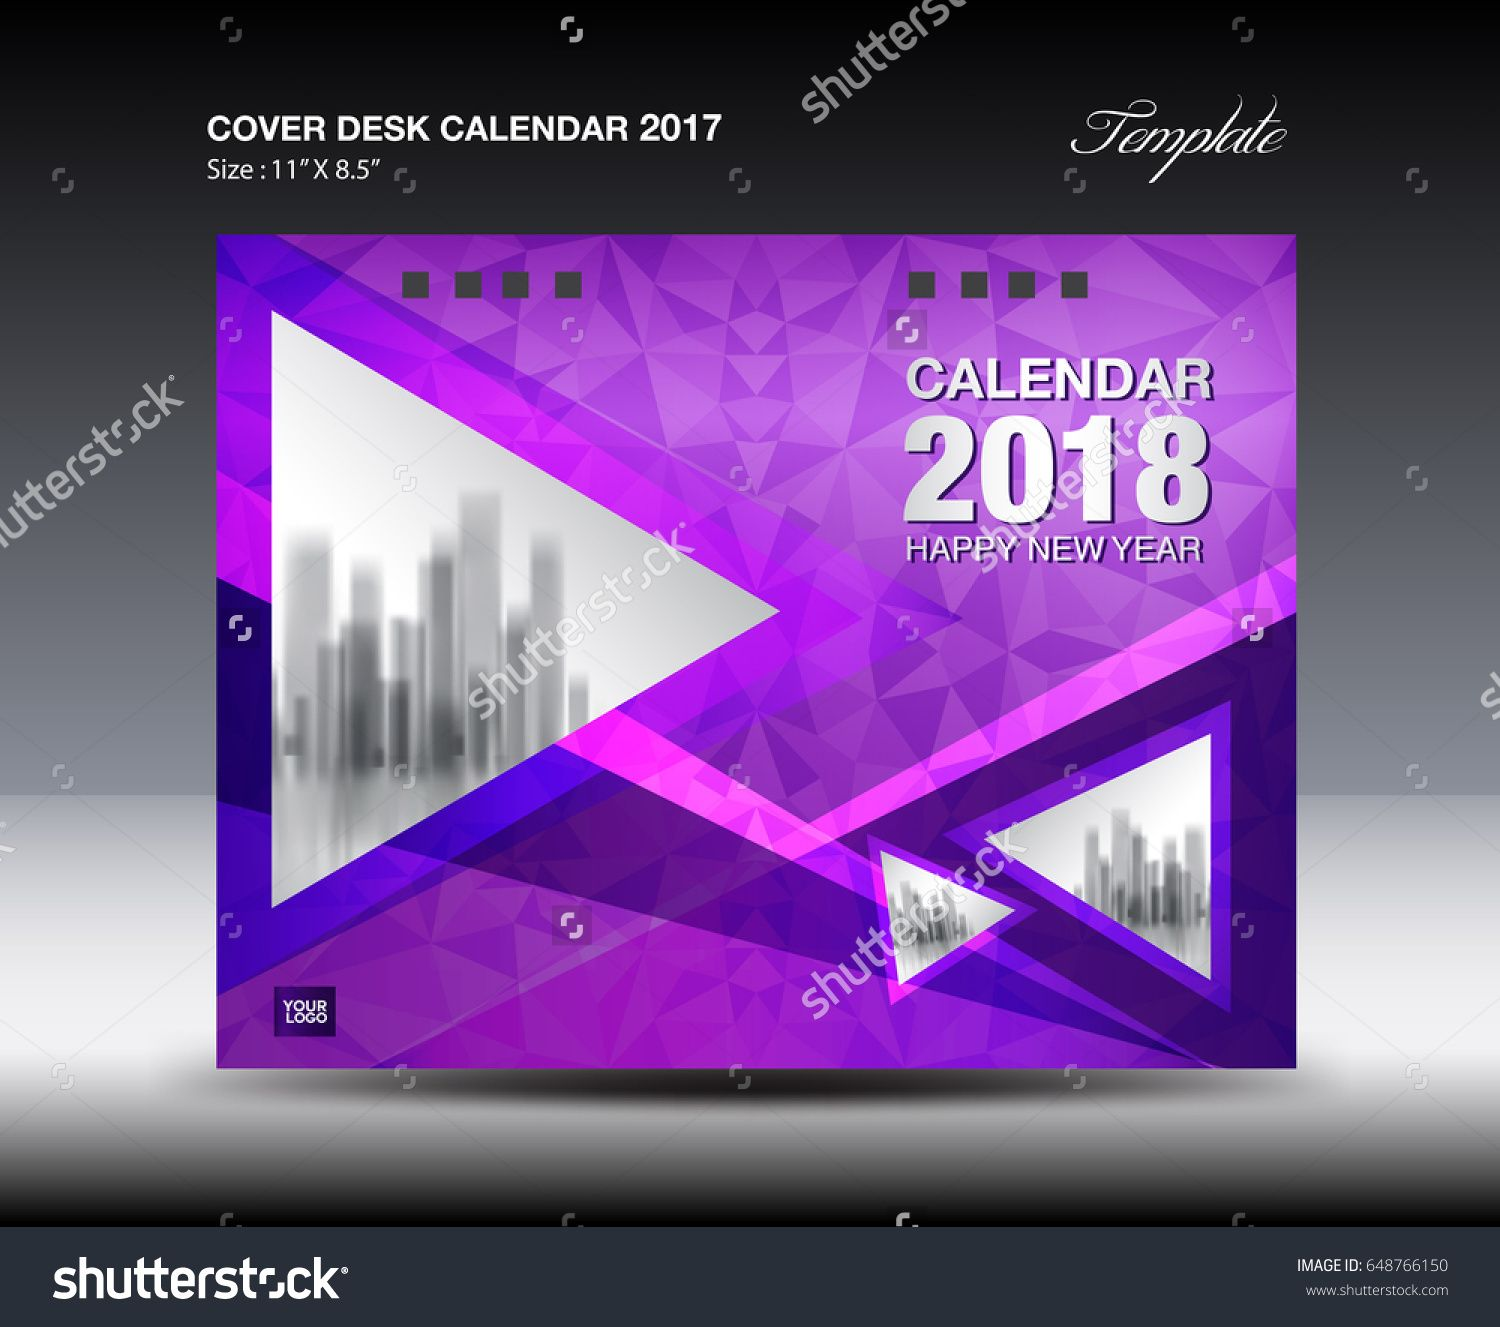 Calendar Cover 2018 : Purple cover desk calendar design polygon background